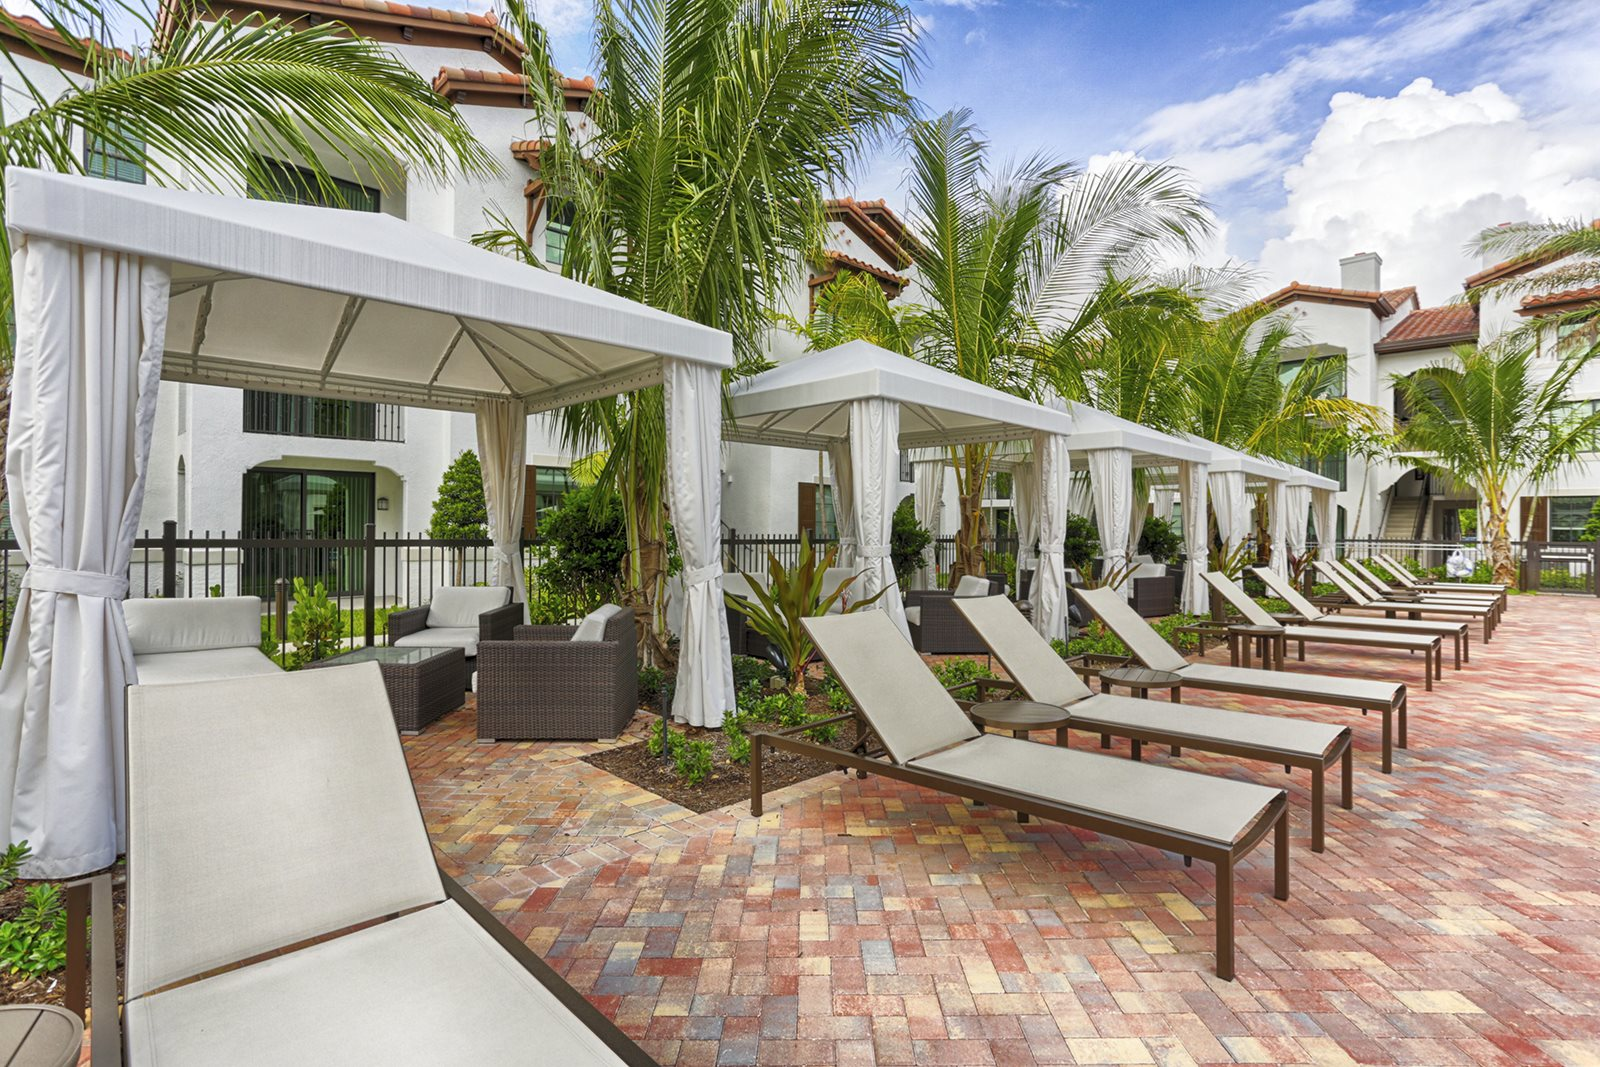 Poolside Cabanas- Luxury Apartments in Doral, FL